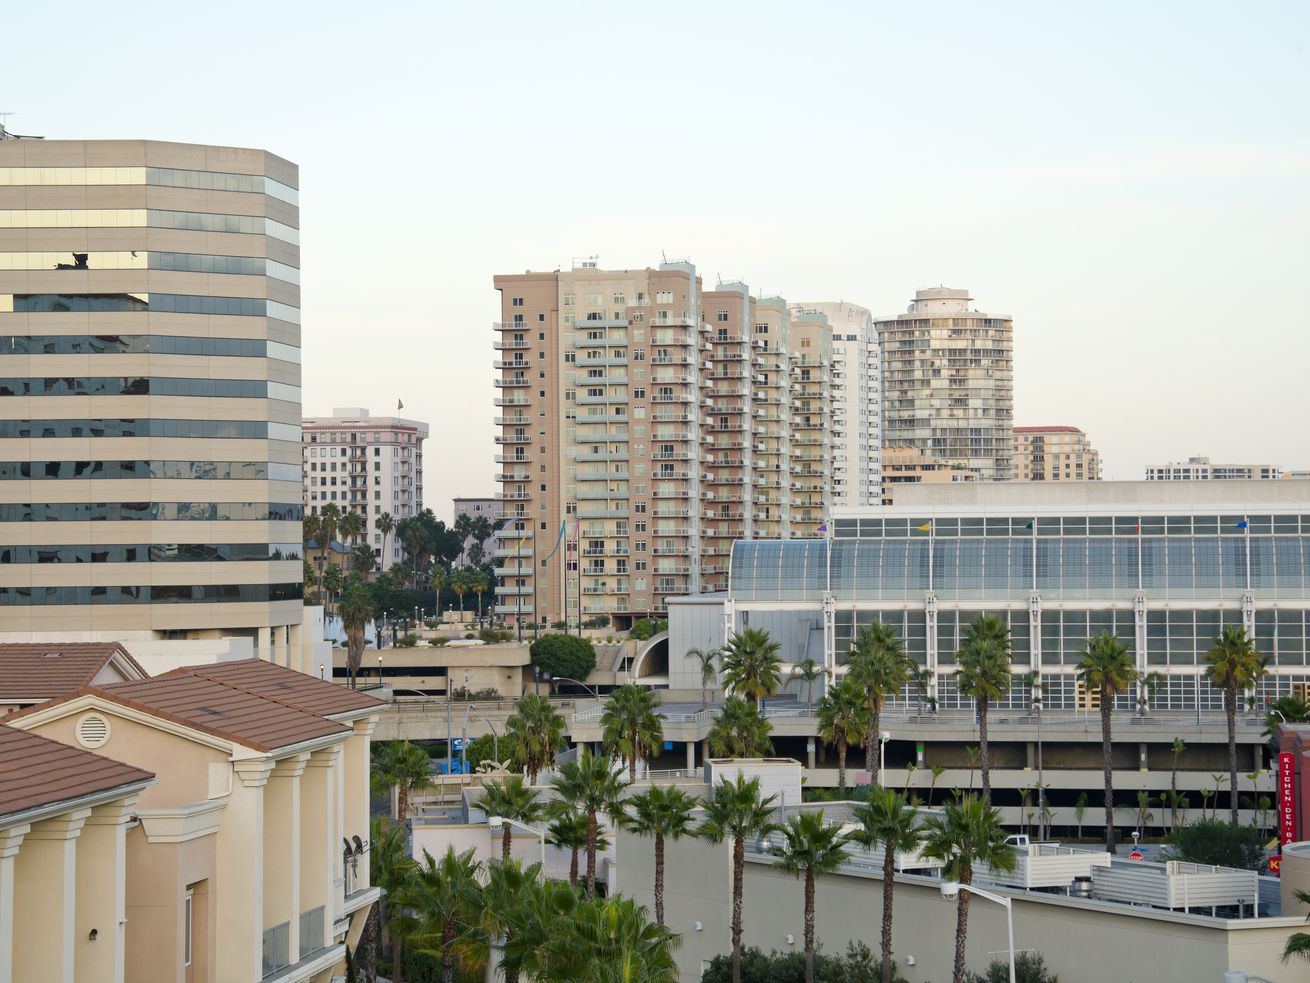 The average rent in Long Beach as of February? $1,418.